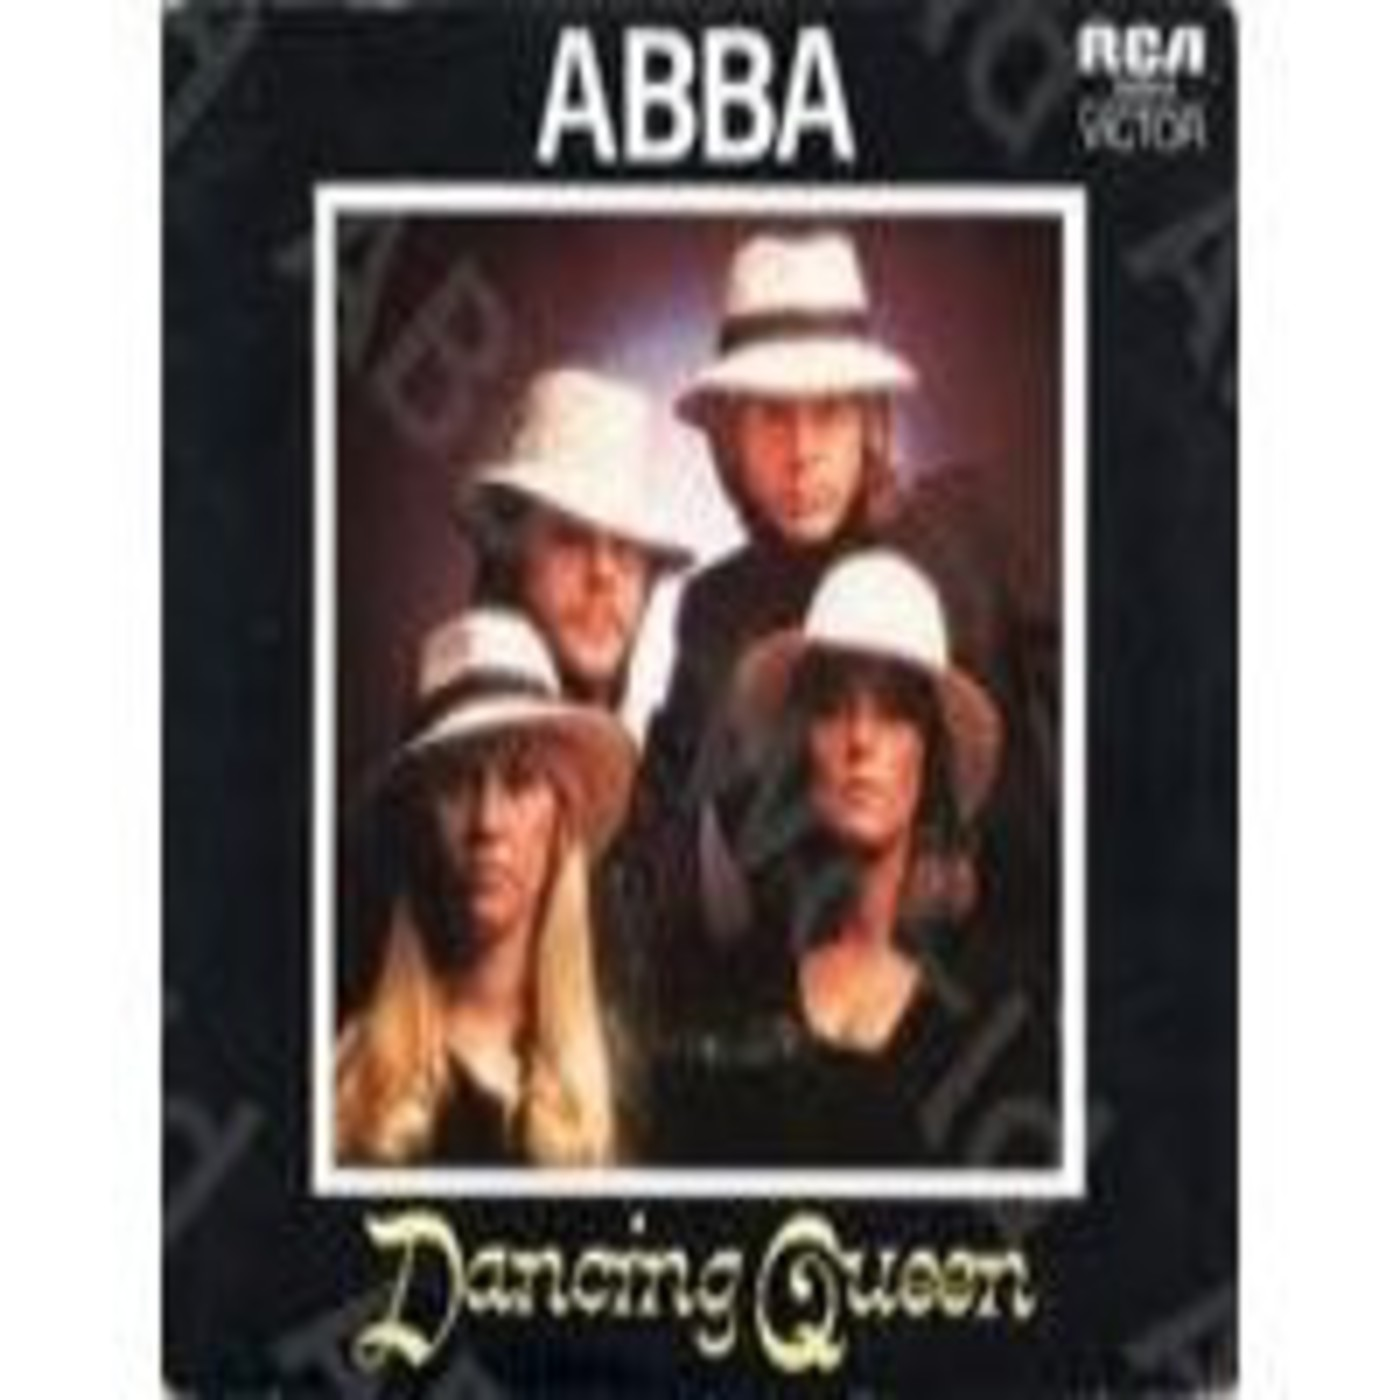 Descargar Mp3 Abba Dancing Queen Gratis 2018 2020